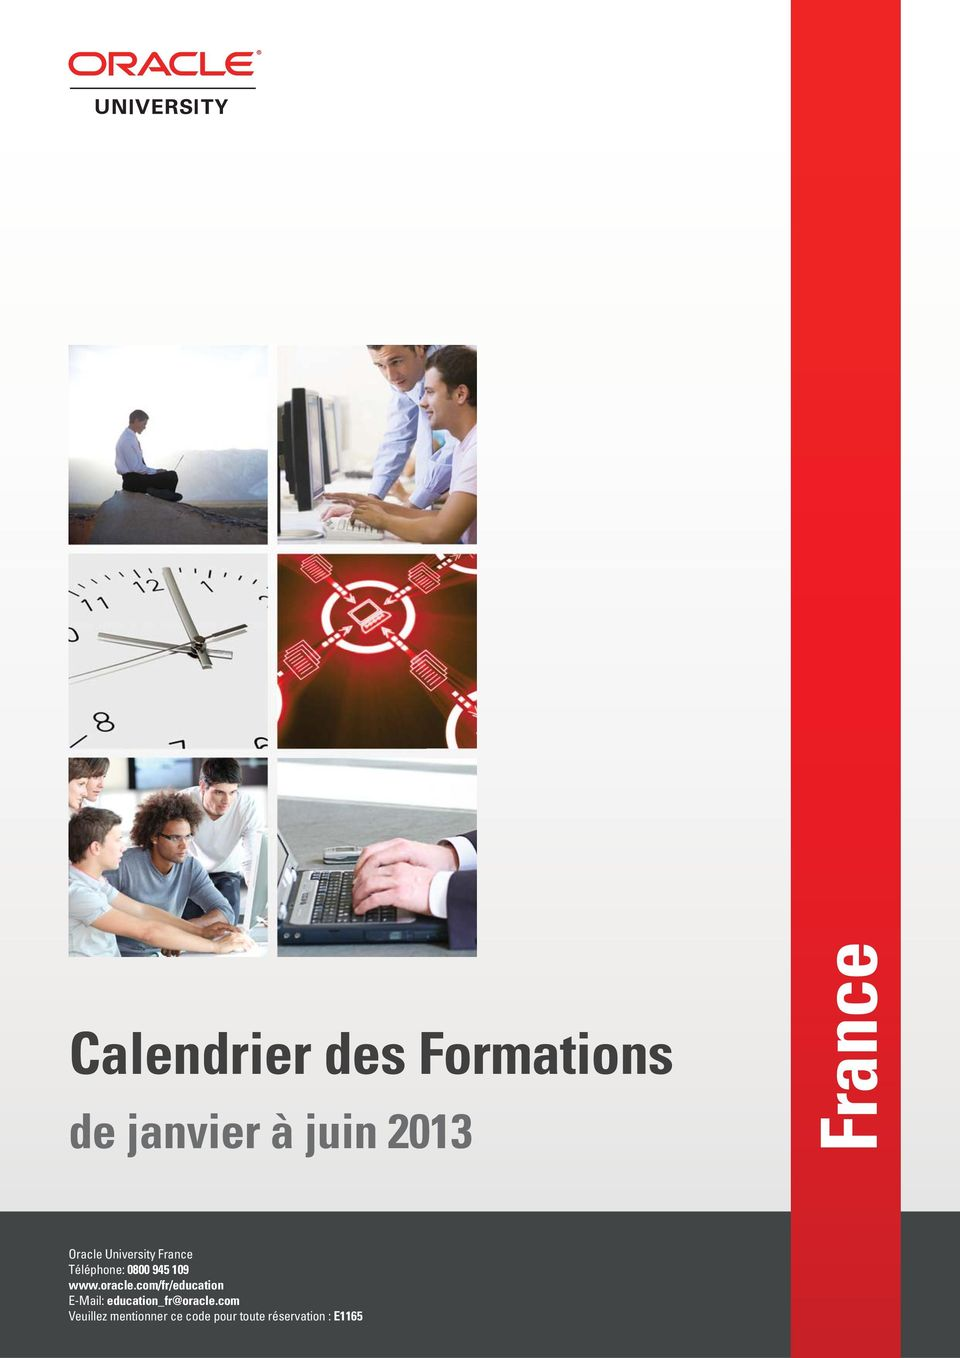 oracle.com/fr/education E-Mail: education_fr@oracle.